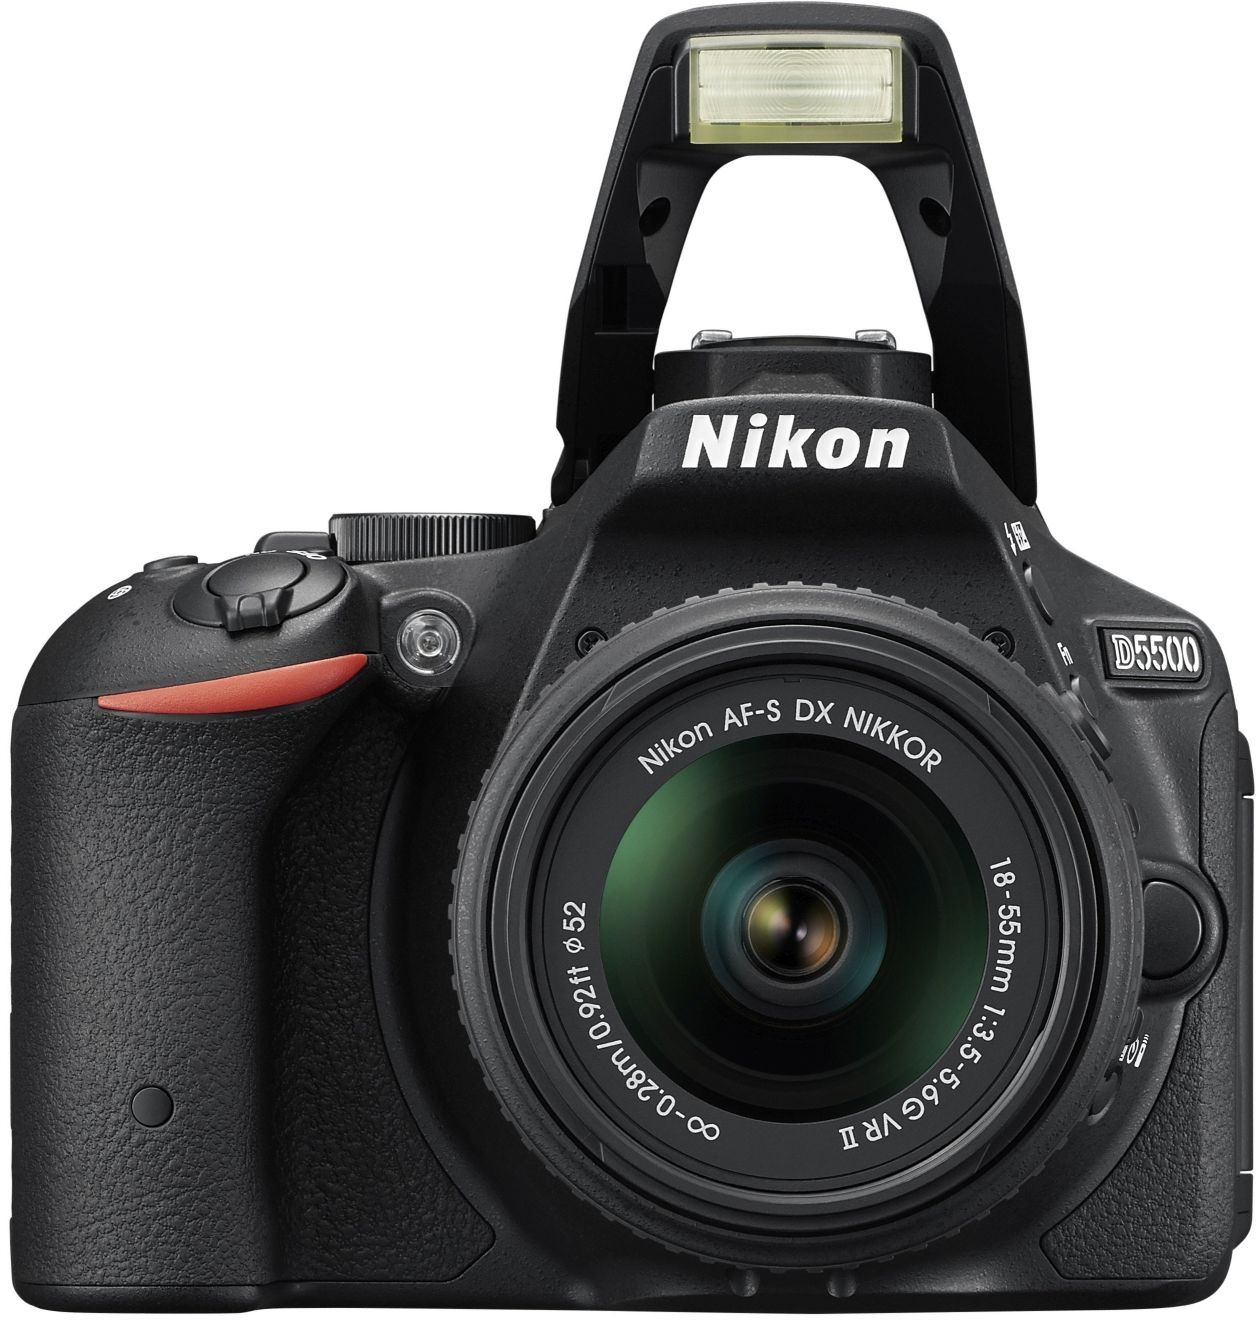 Nikon D5500 Kit 18-55mm VR II